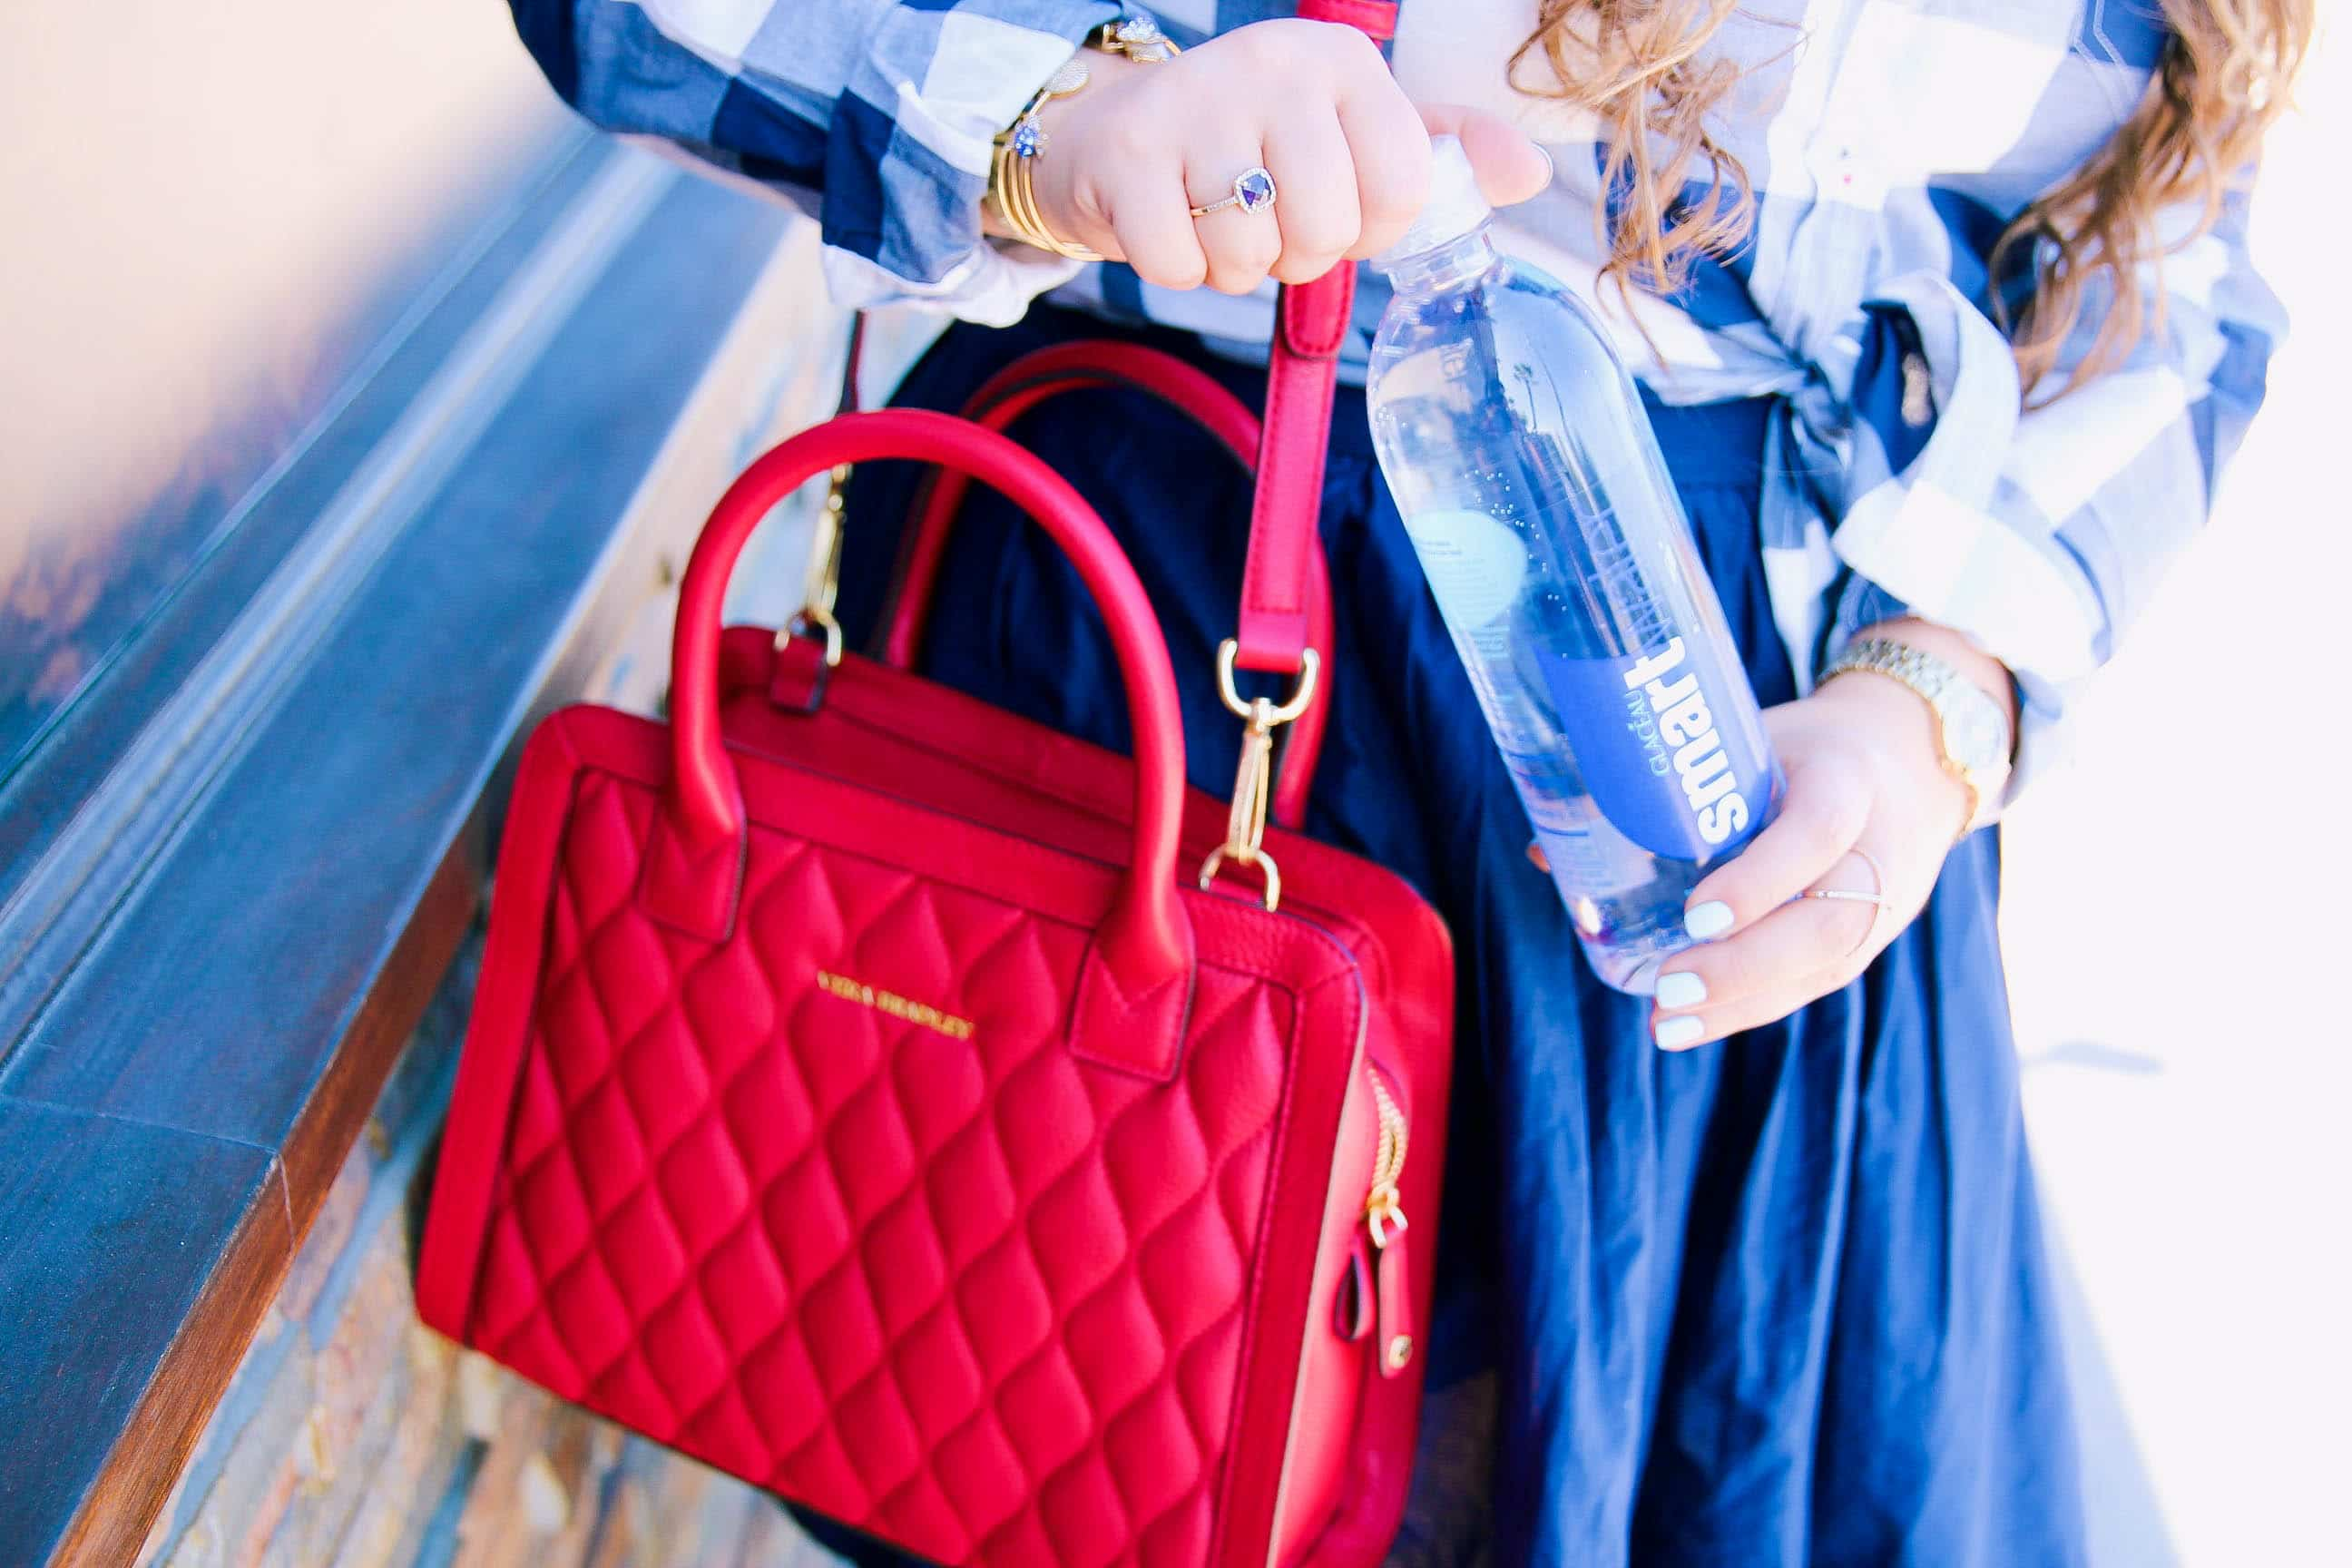 missyonmadison, melissa tierney, smartwater, spring style, hydration, how to stay hydrated, spring fitness, spring wellness, how to stay healthy this spring, target, smartwater at target, la blogger, fashion blogger, lifestyle blogger, flatlay, what's in my bag,